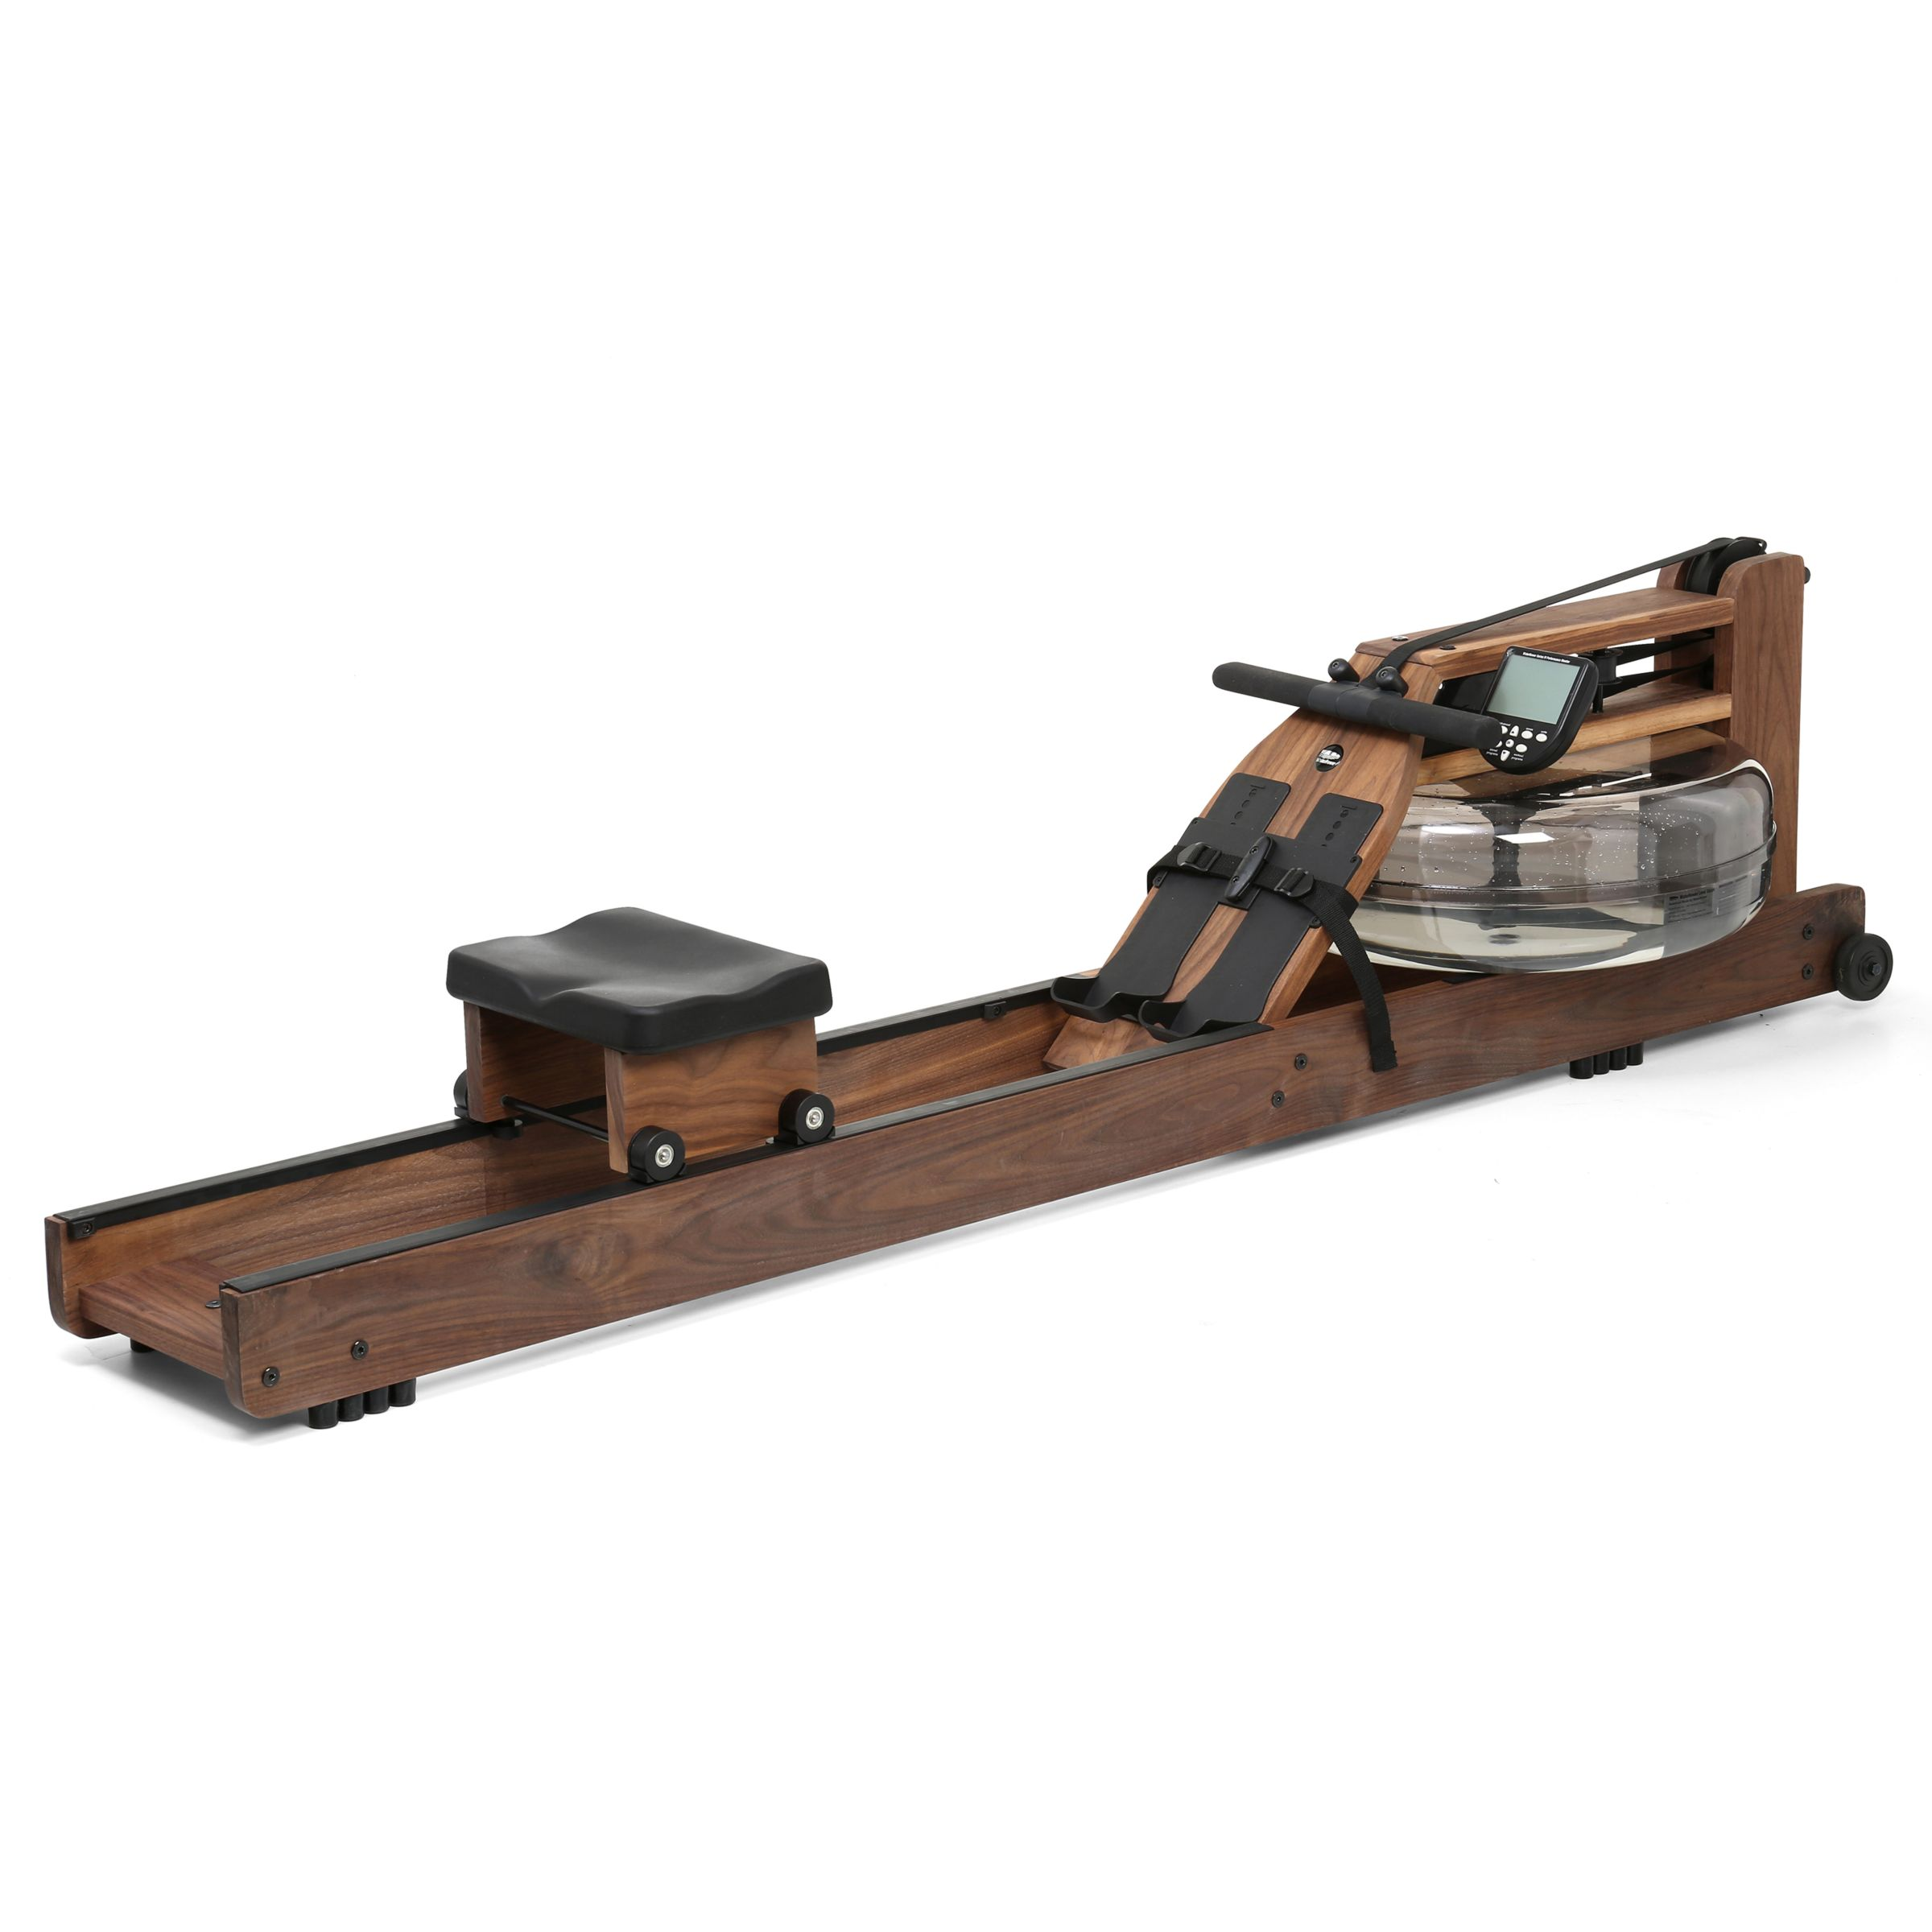 Water Rower WaterRower Classic Rowing Machine with S4 Performance Monitor, American Black Walnut